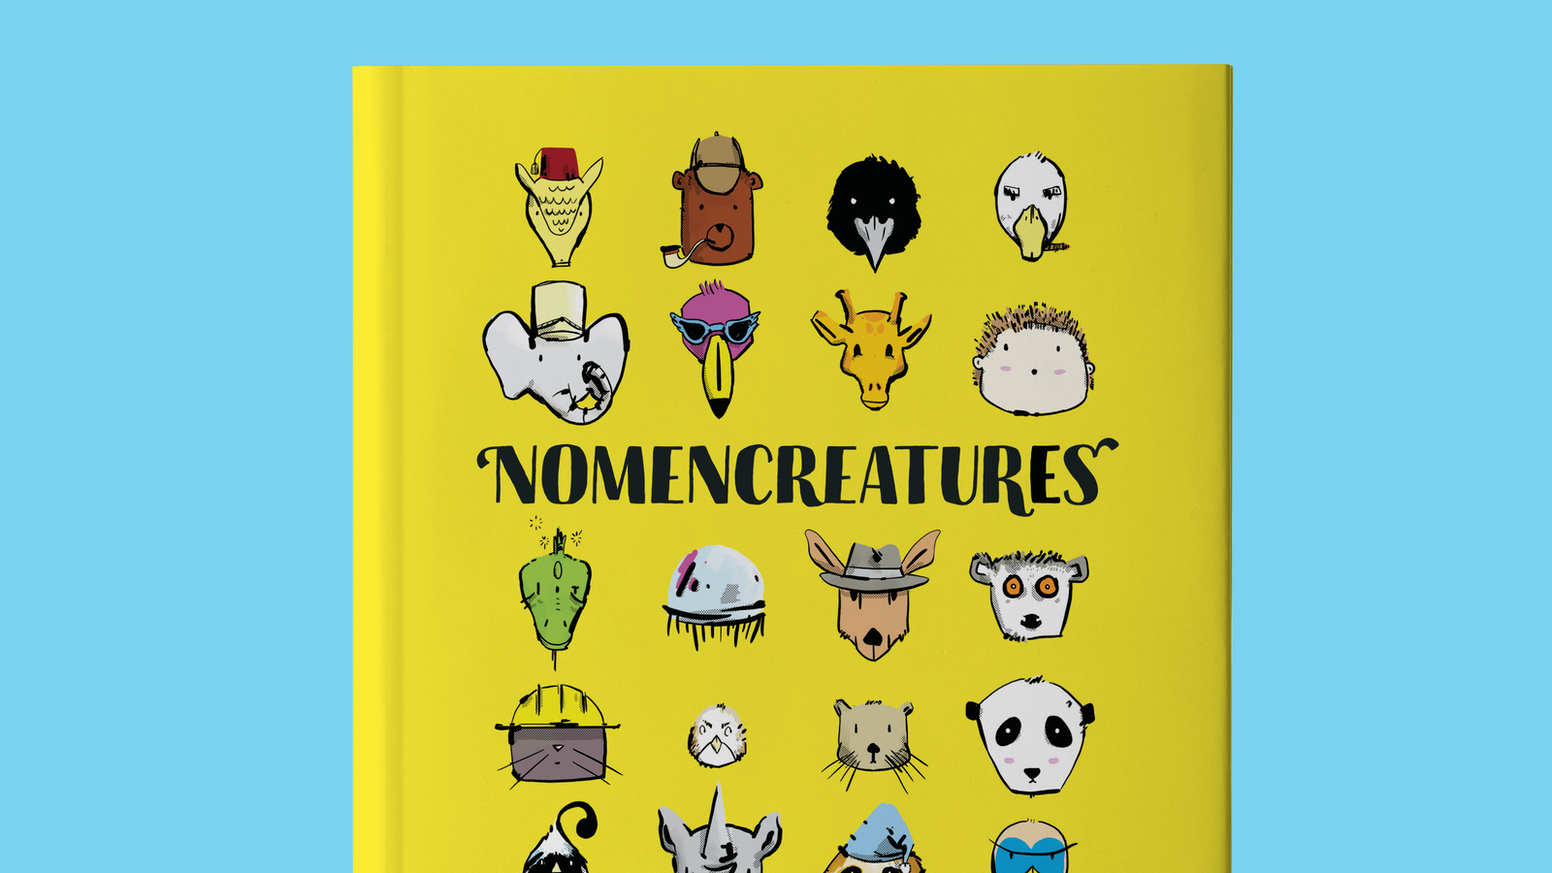 Nomencreatures is an alphabet book with bright animal illustrations  and fun facts that focus on the silly parts of science!